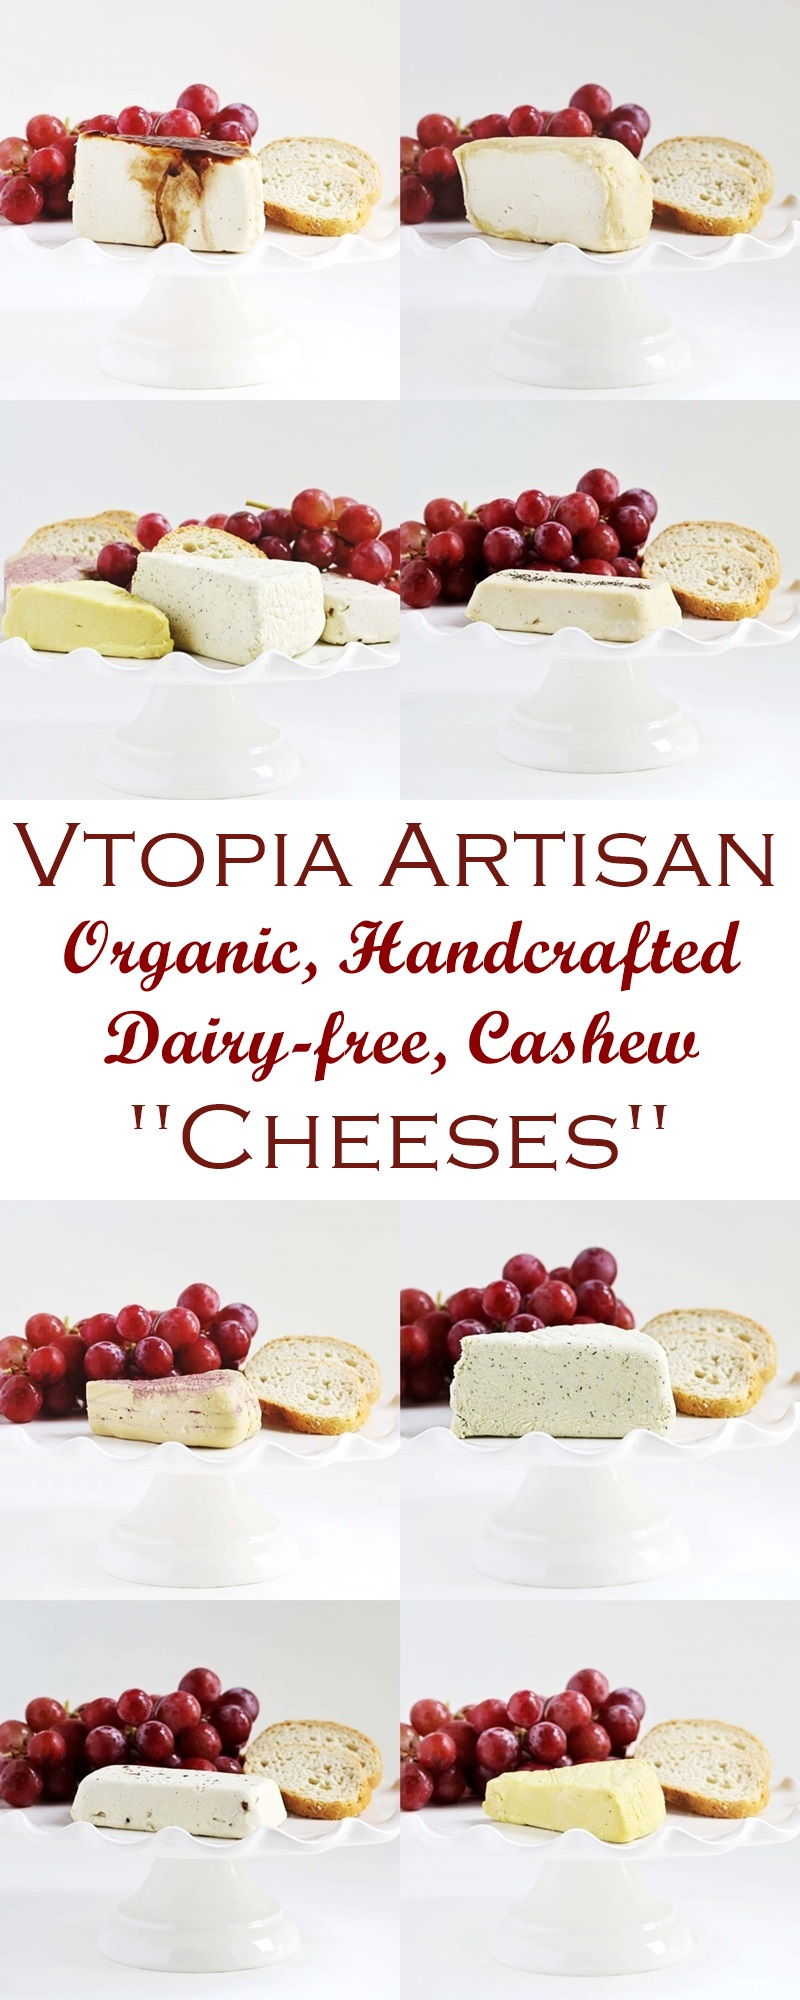 Vtopian Artisan Cheeses - Dairy-free, Vegan, Cashew-Based, Cultured Hard and Soft Cheeses (Informational Review)